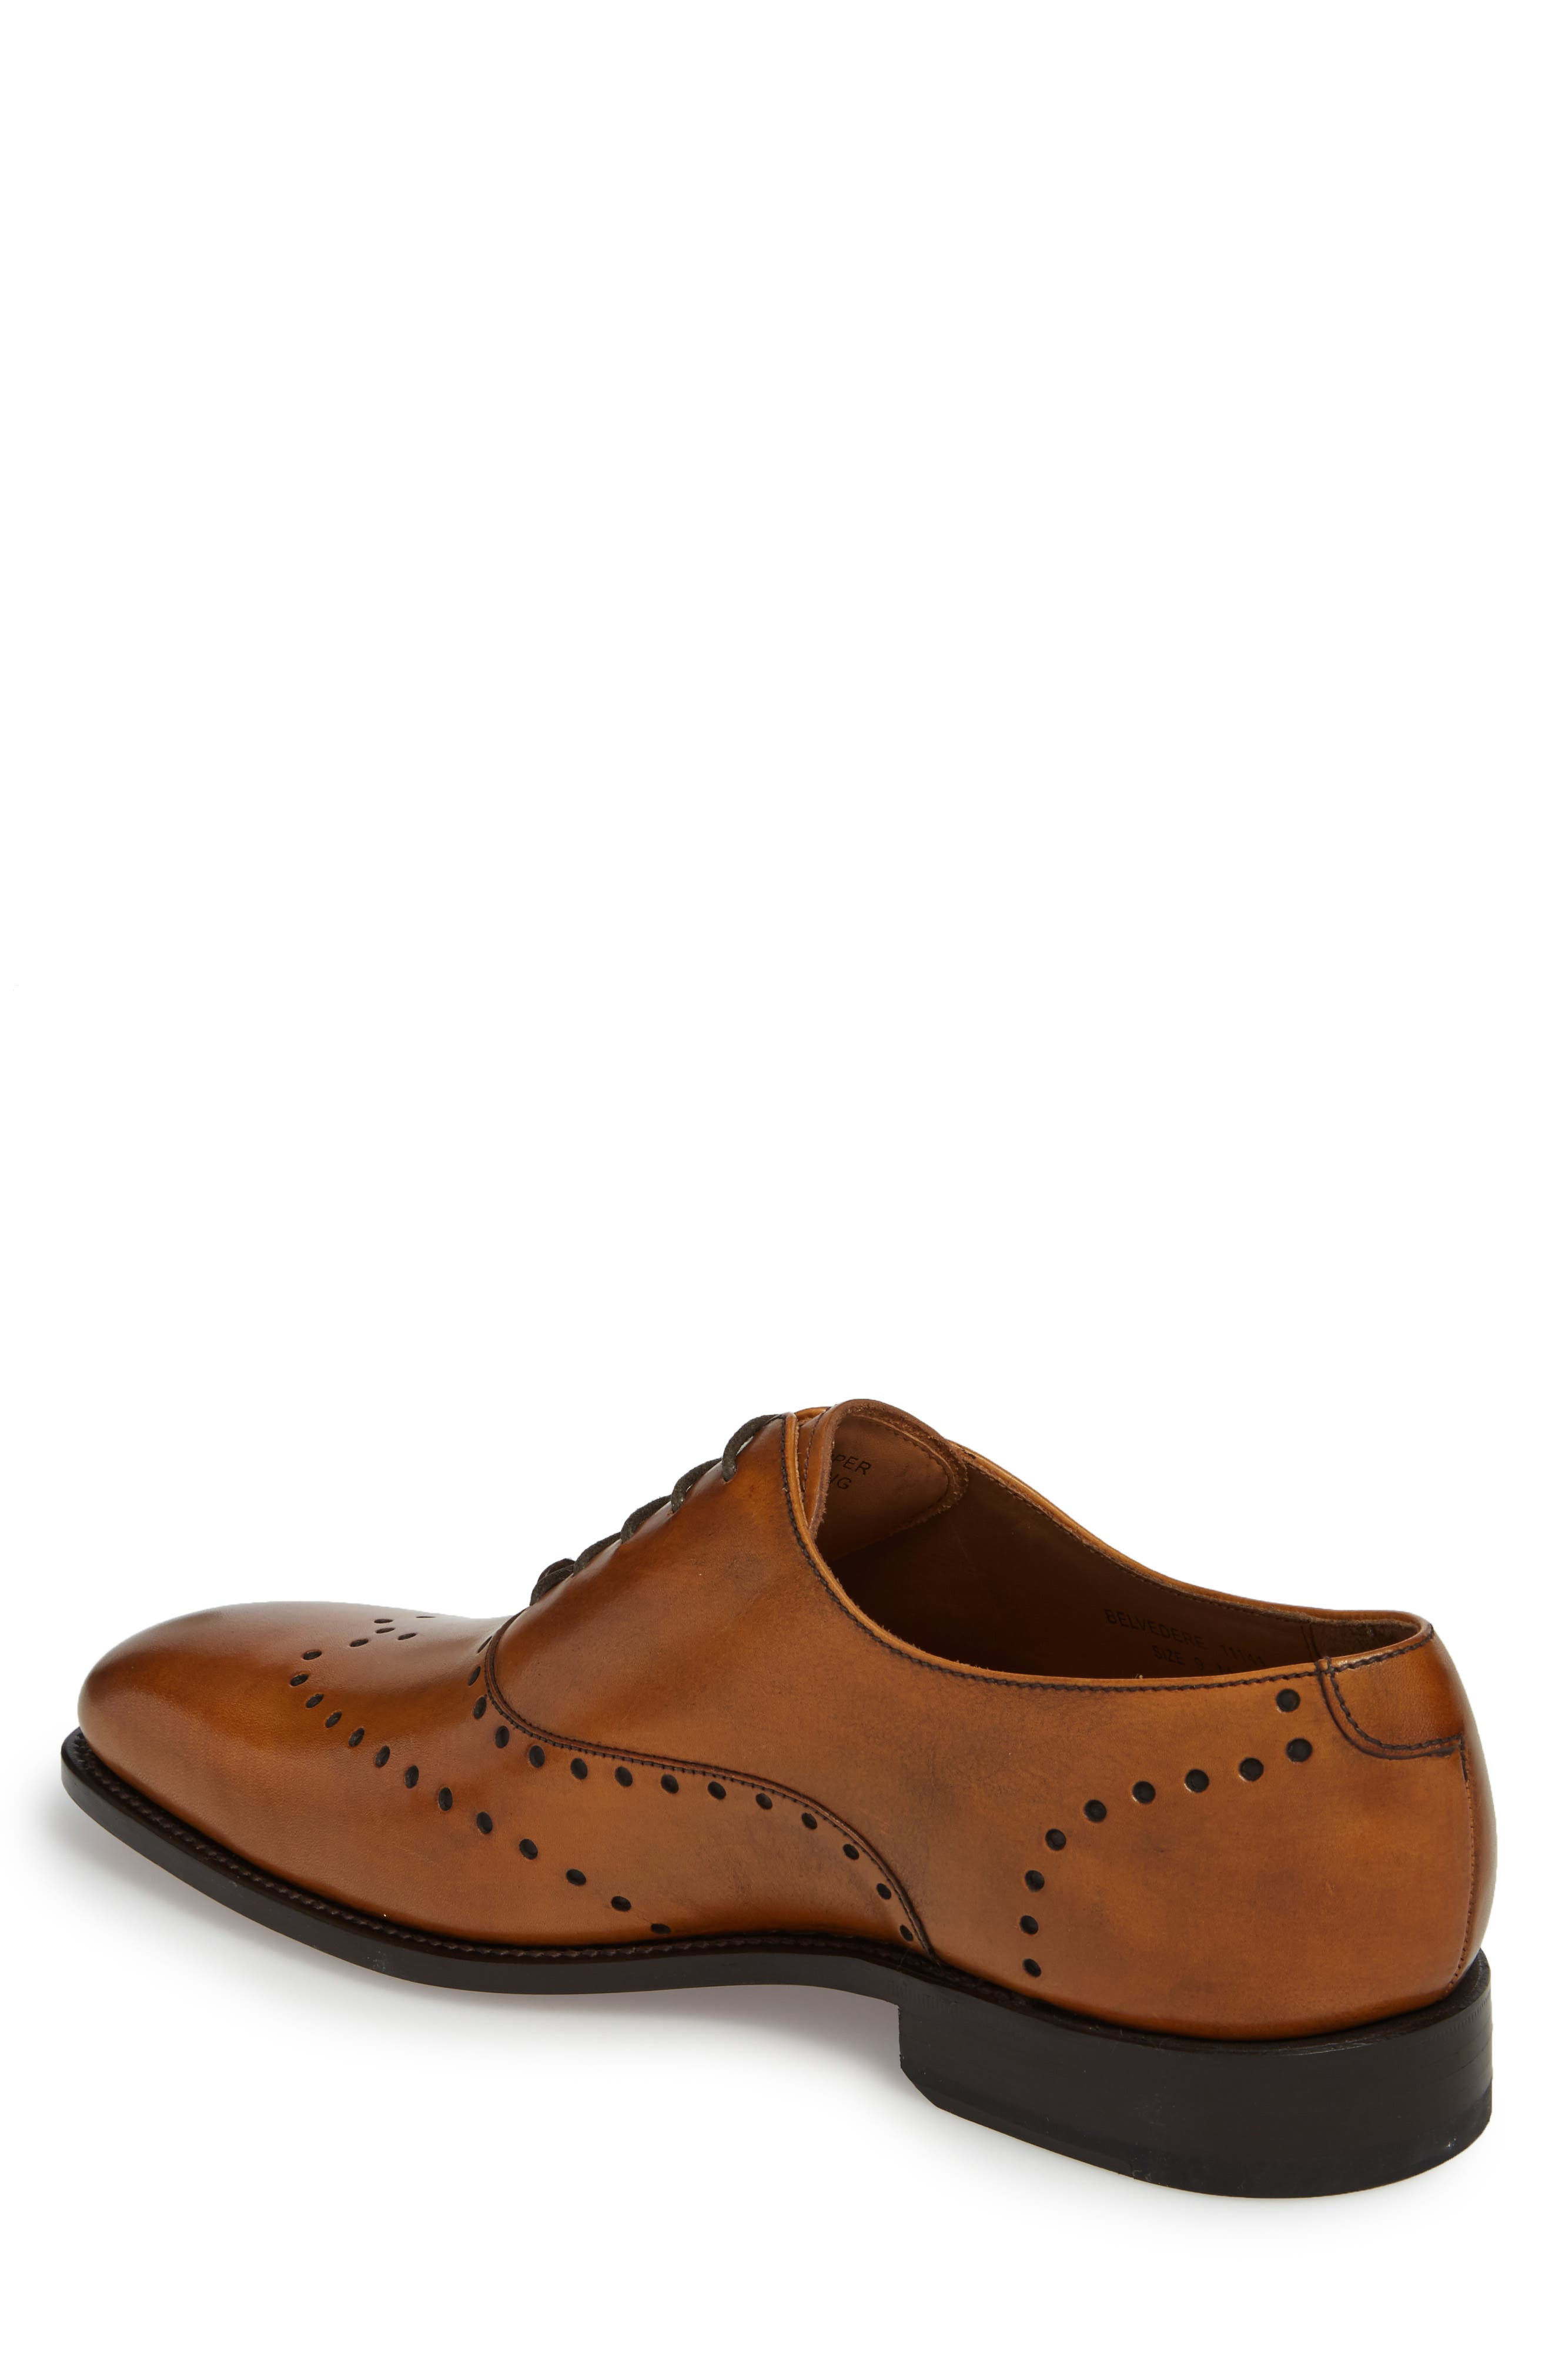 Belvedere Wingtip,                             Alternate thumbnail 2, color,                             OAK